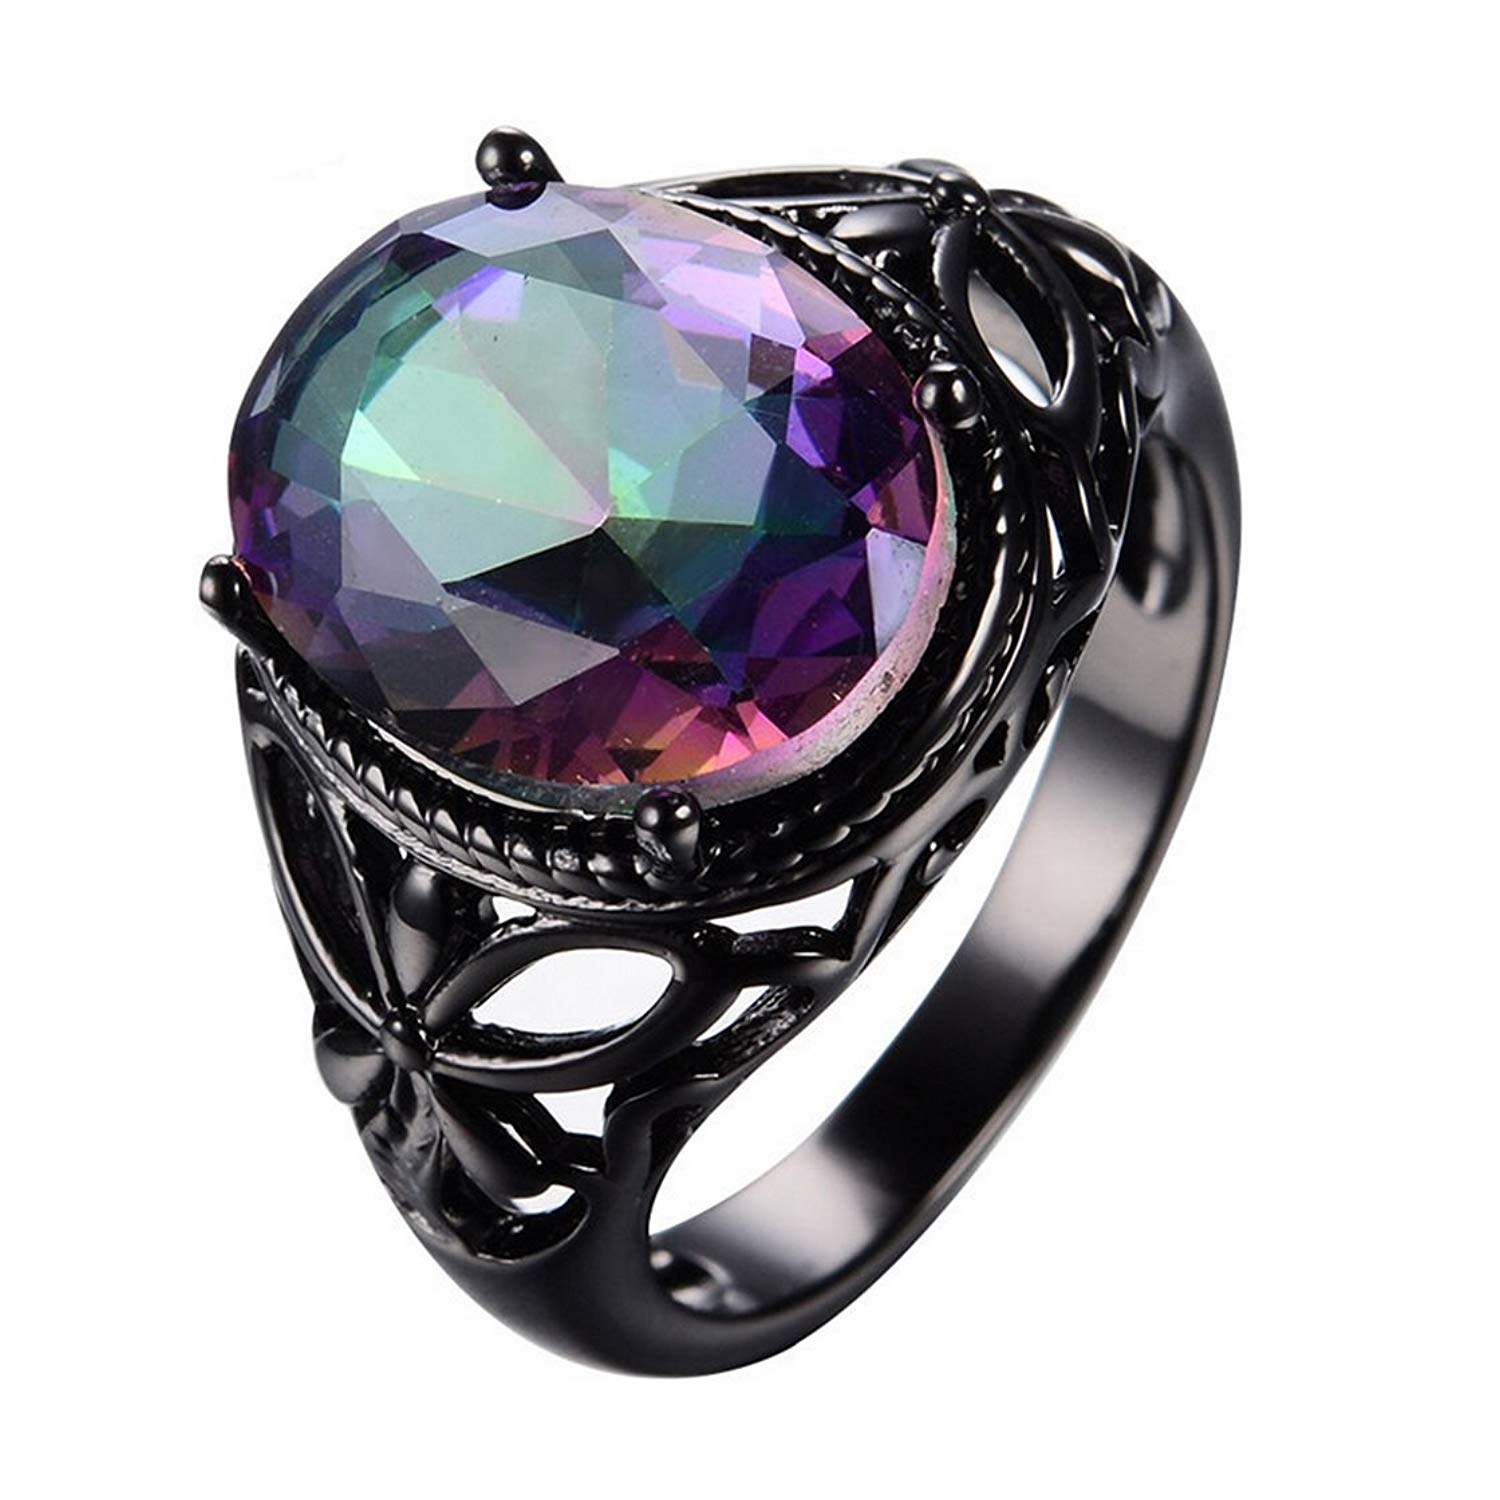 1cd551779 Get Quotations · ARICA Chunky Oval Colorful Sapphire Vintage Hollow 10KT  Black Gold Filled Big Crystal Ring 6.0